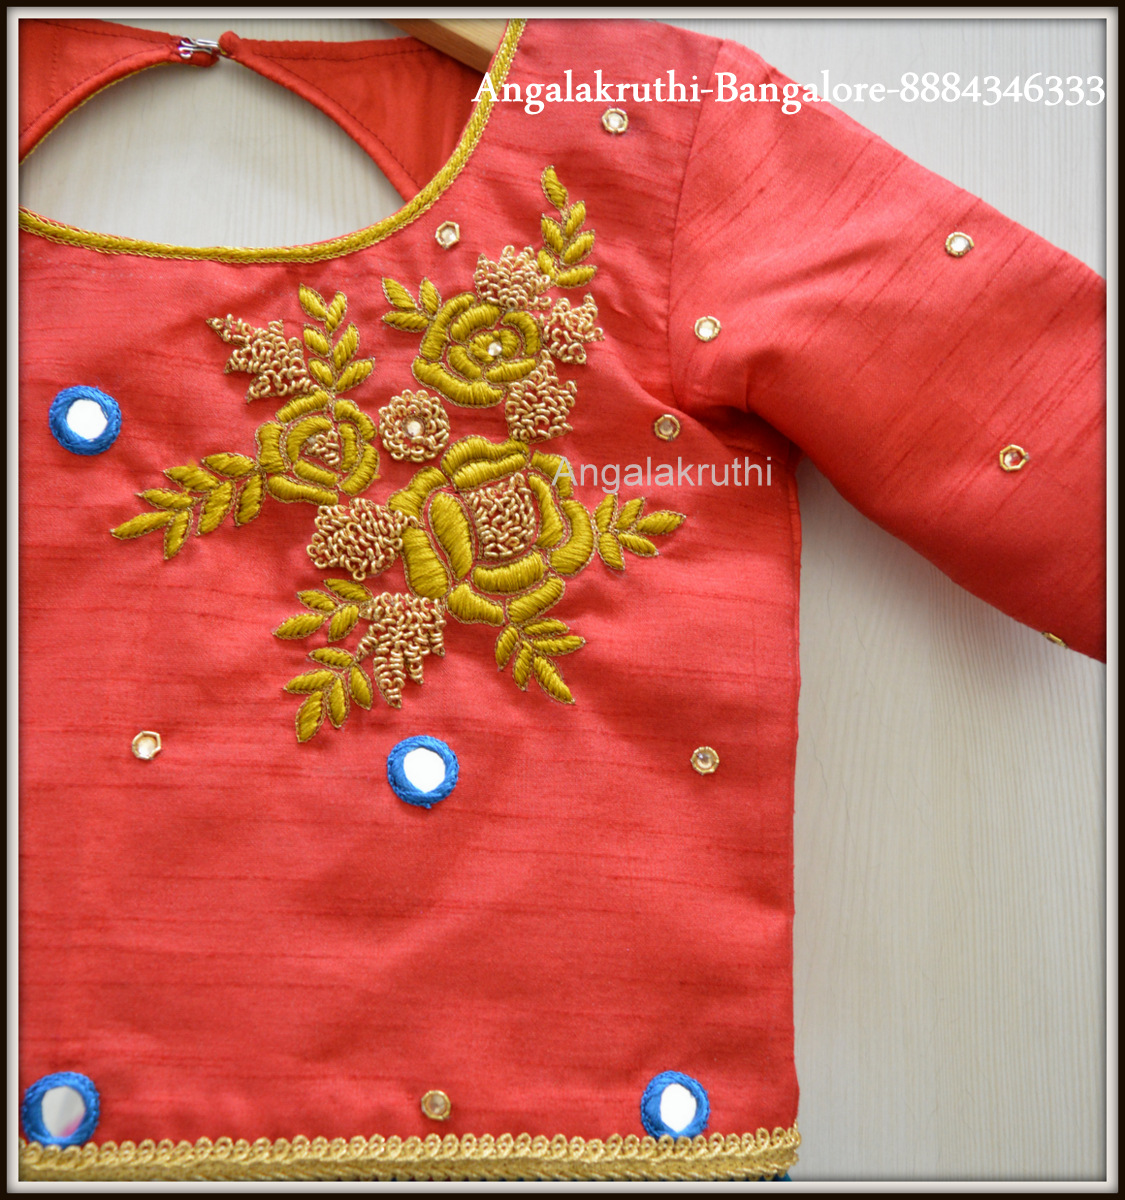 Bridal Hand Embroidery Blouse Designs By Angalakruthi Ladies And